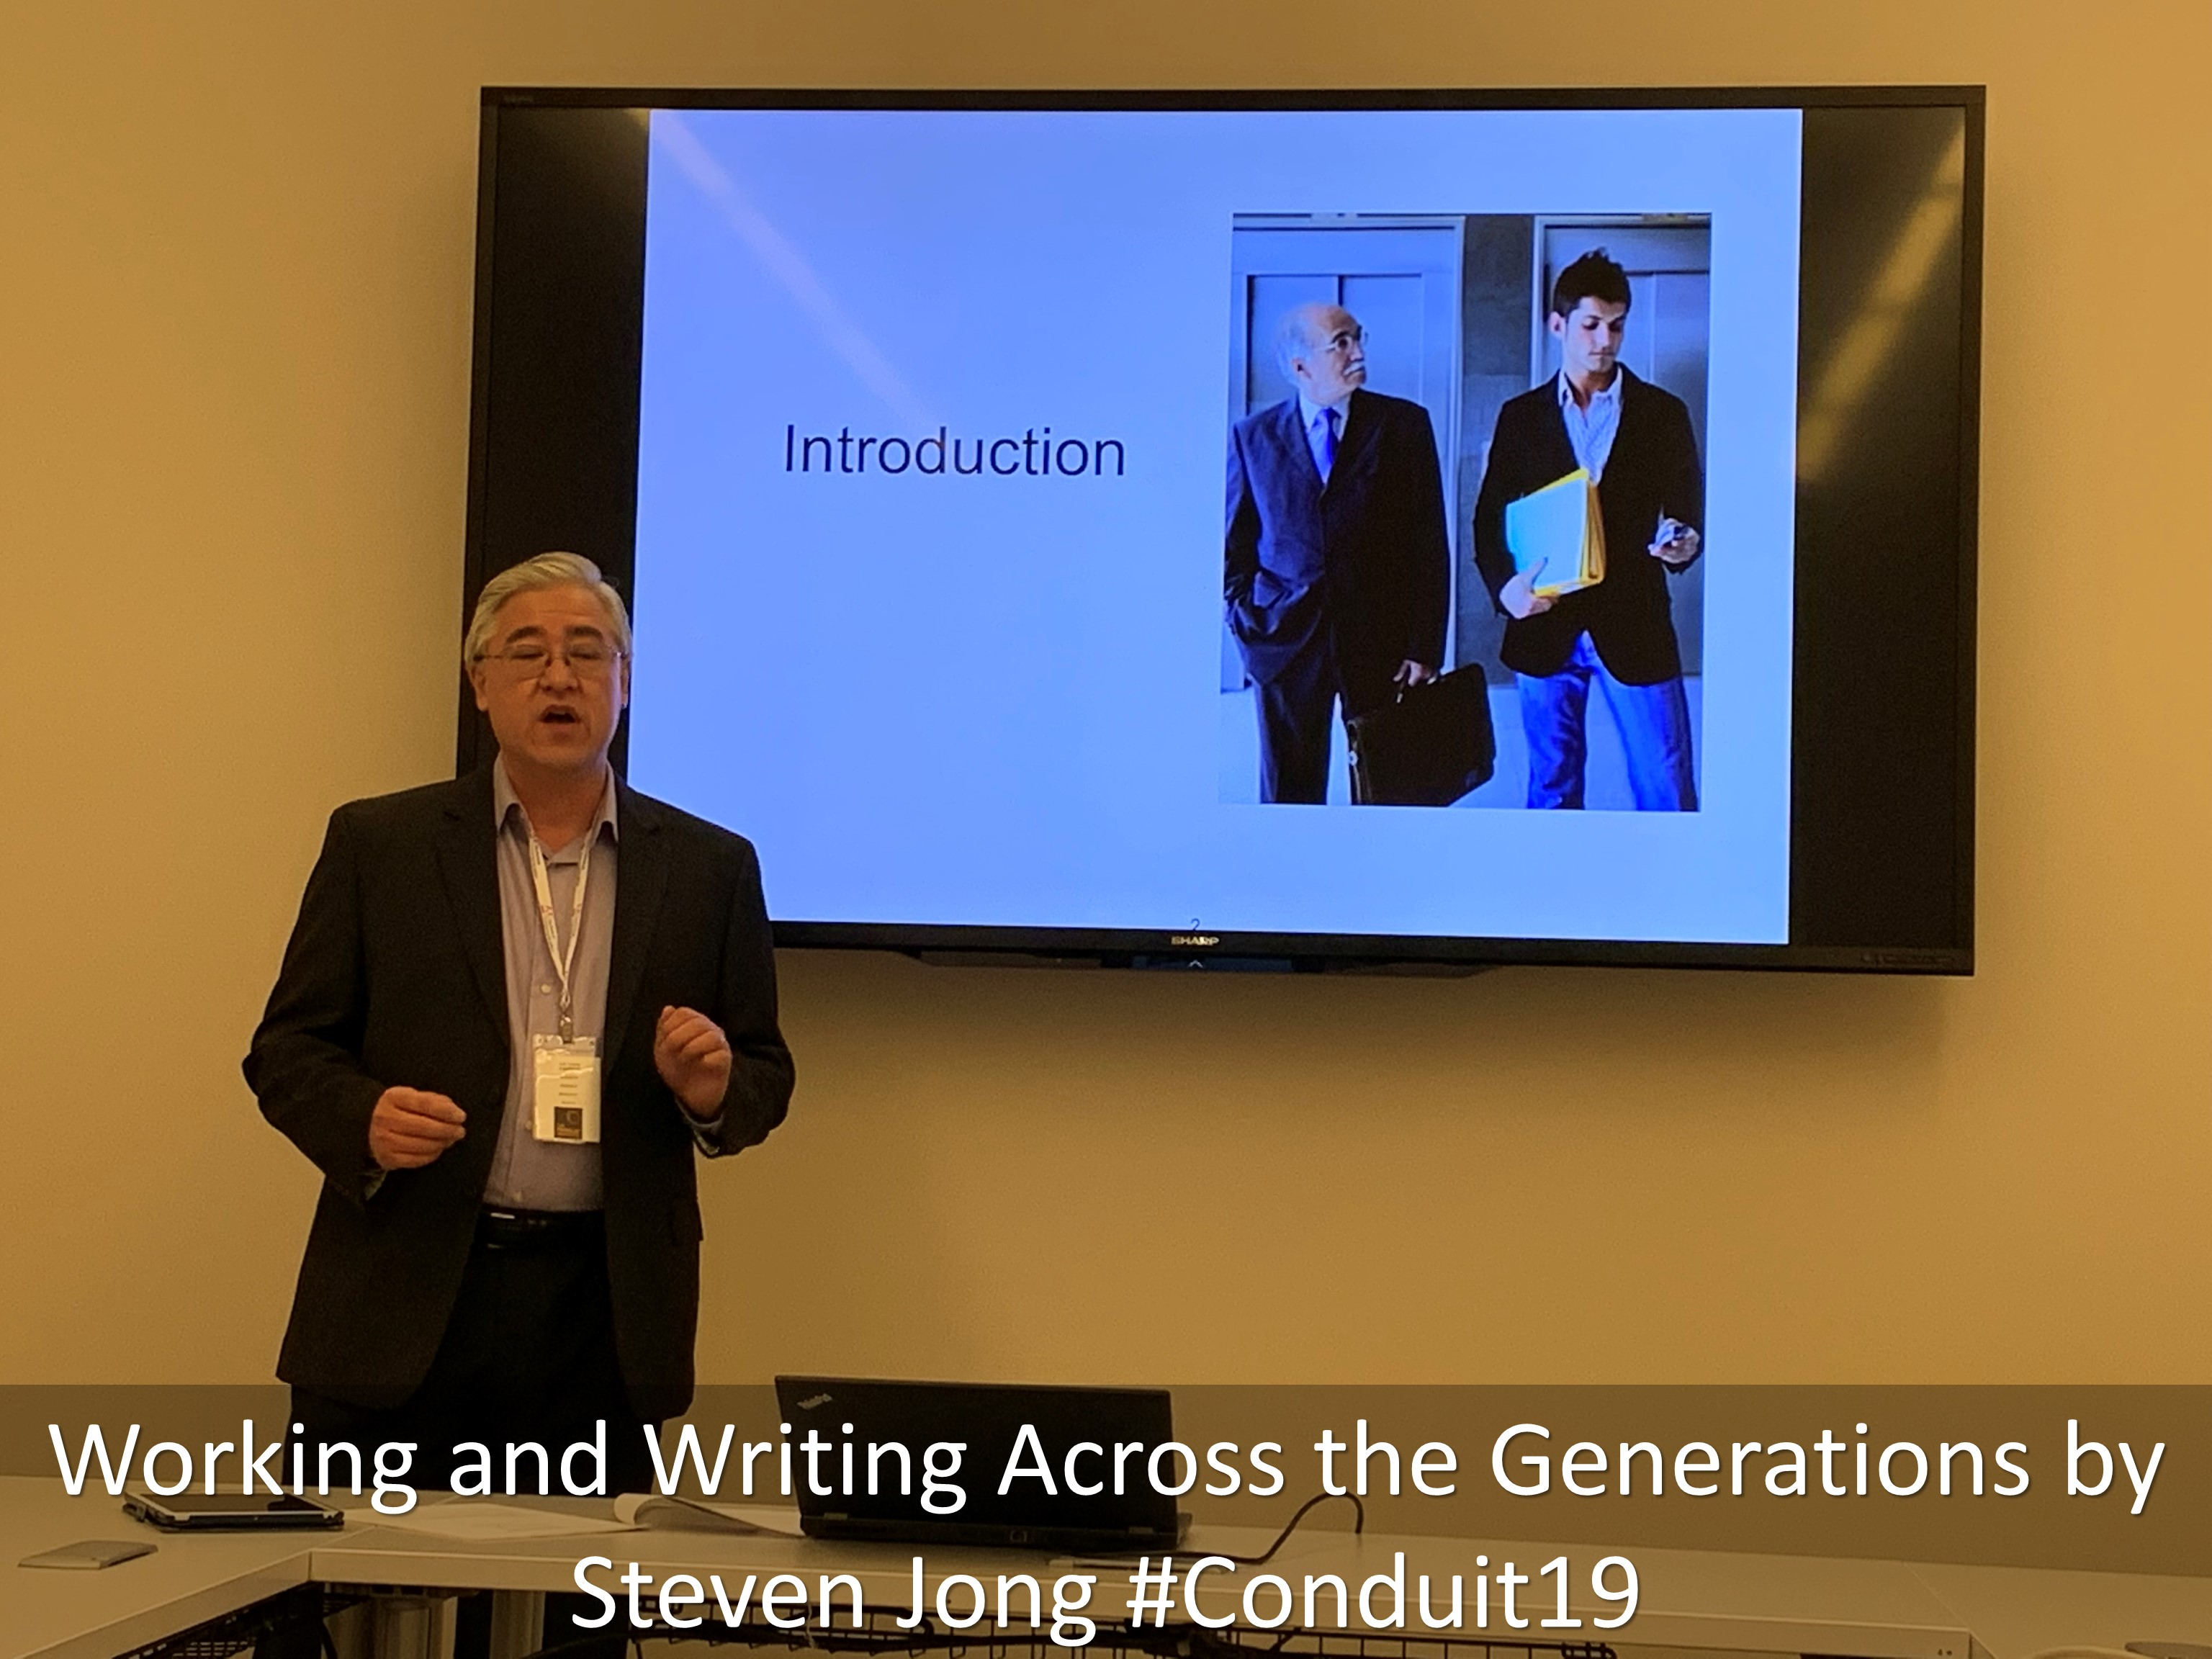 10 Working and Writing Across the Generations by Steven Jong Conduit19